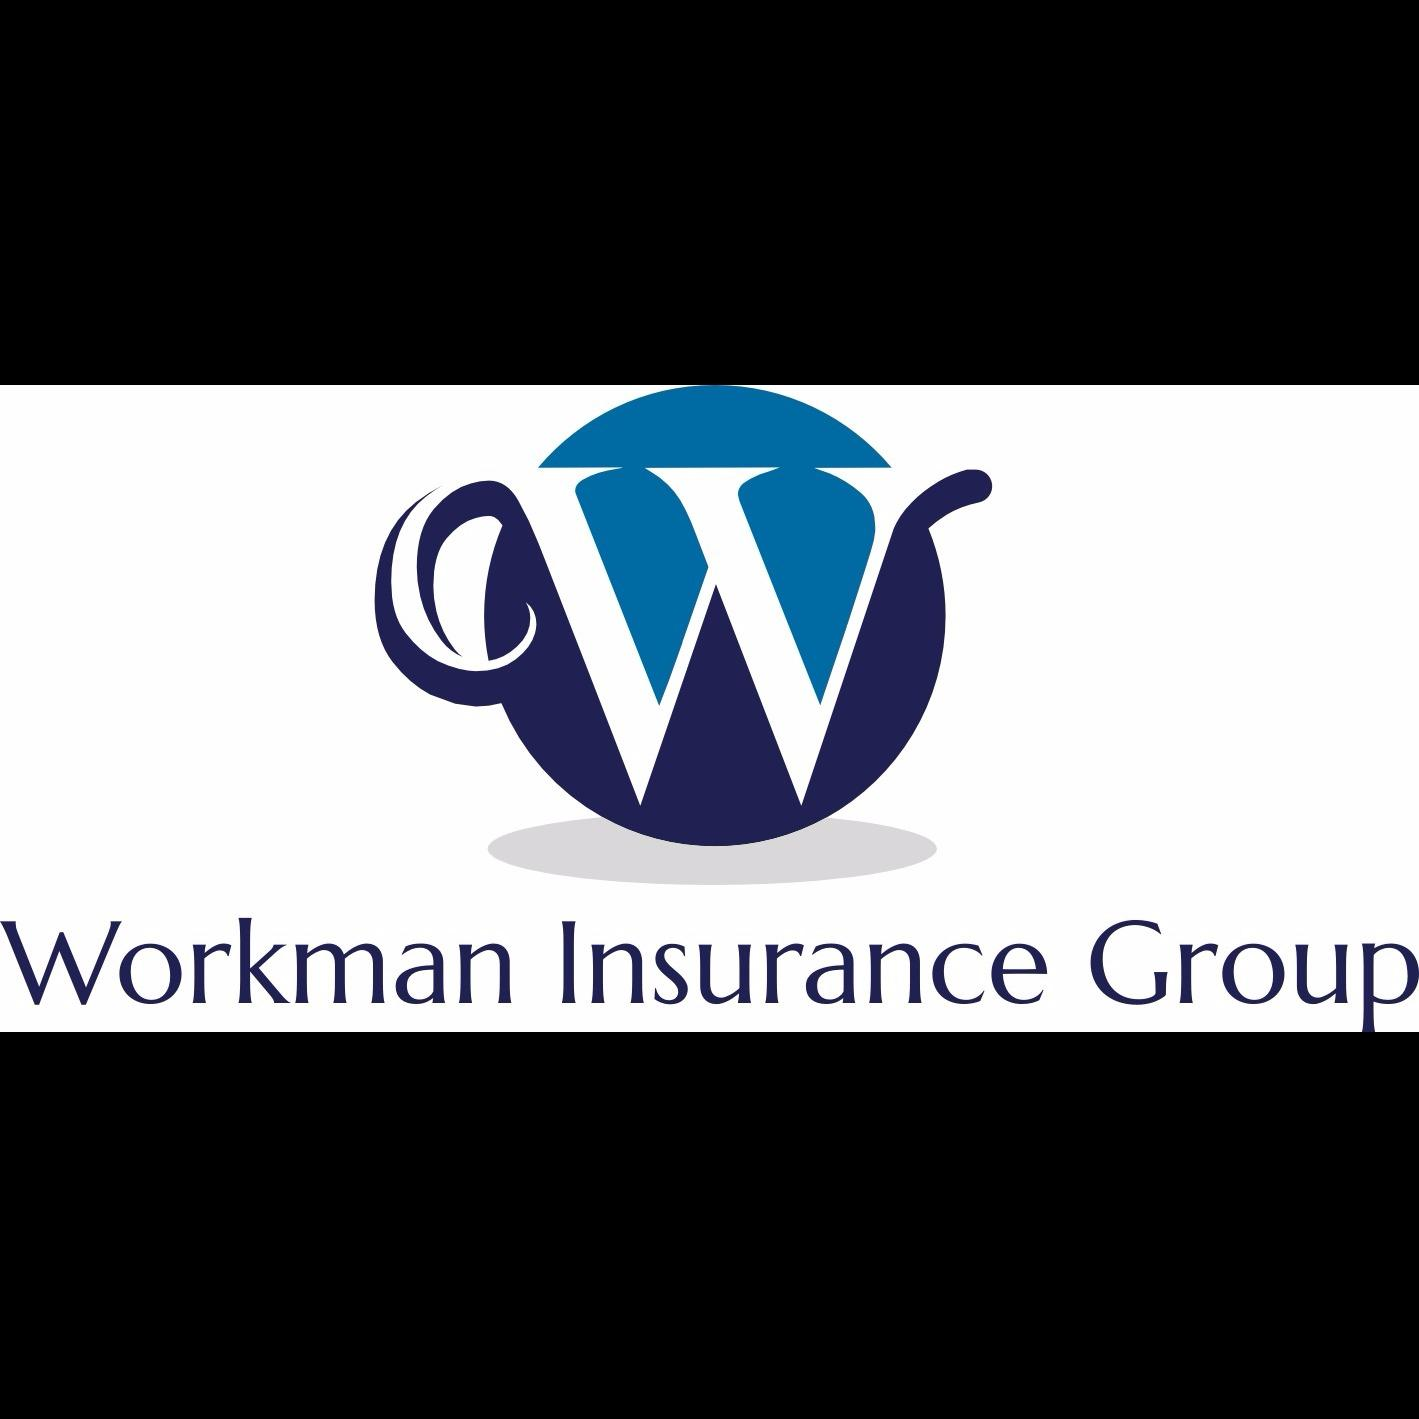 Workman Insurance Group